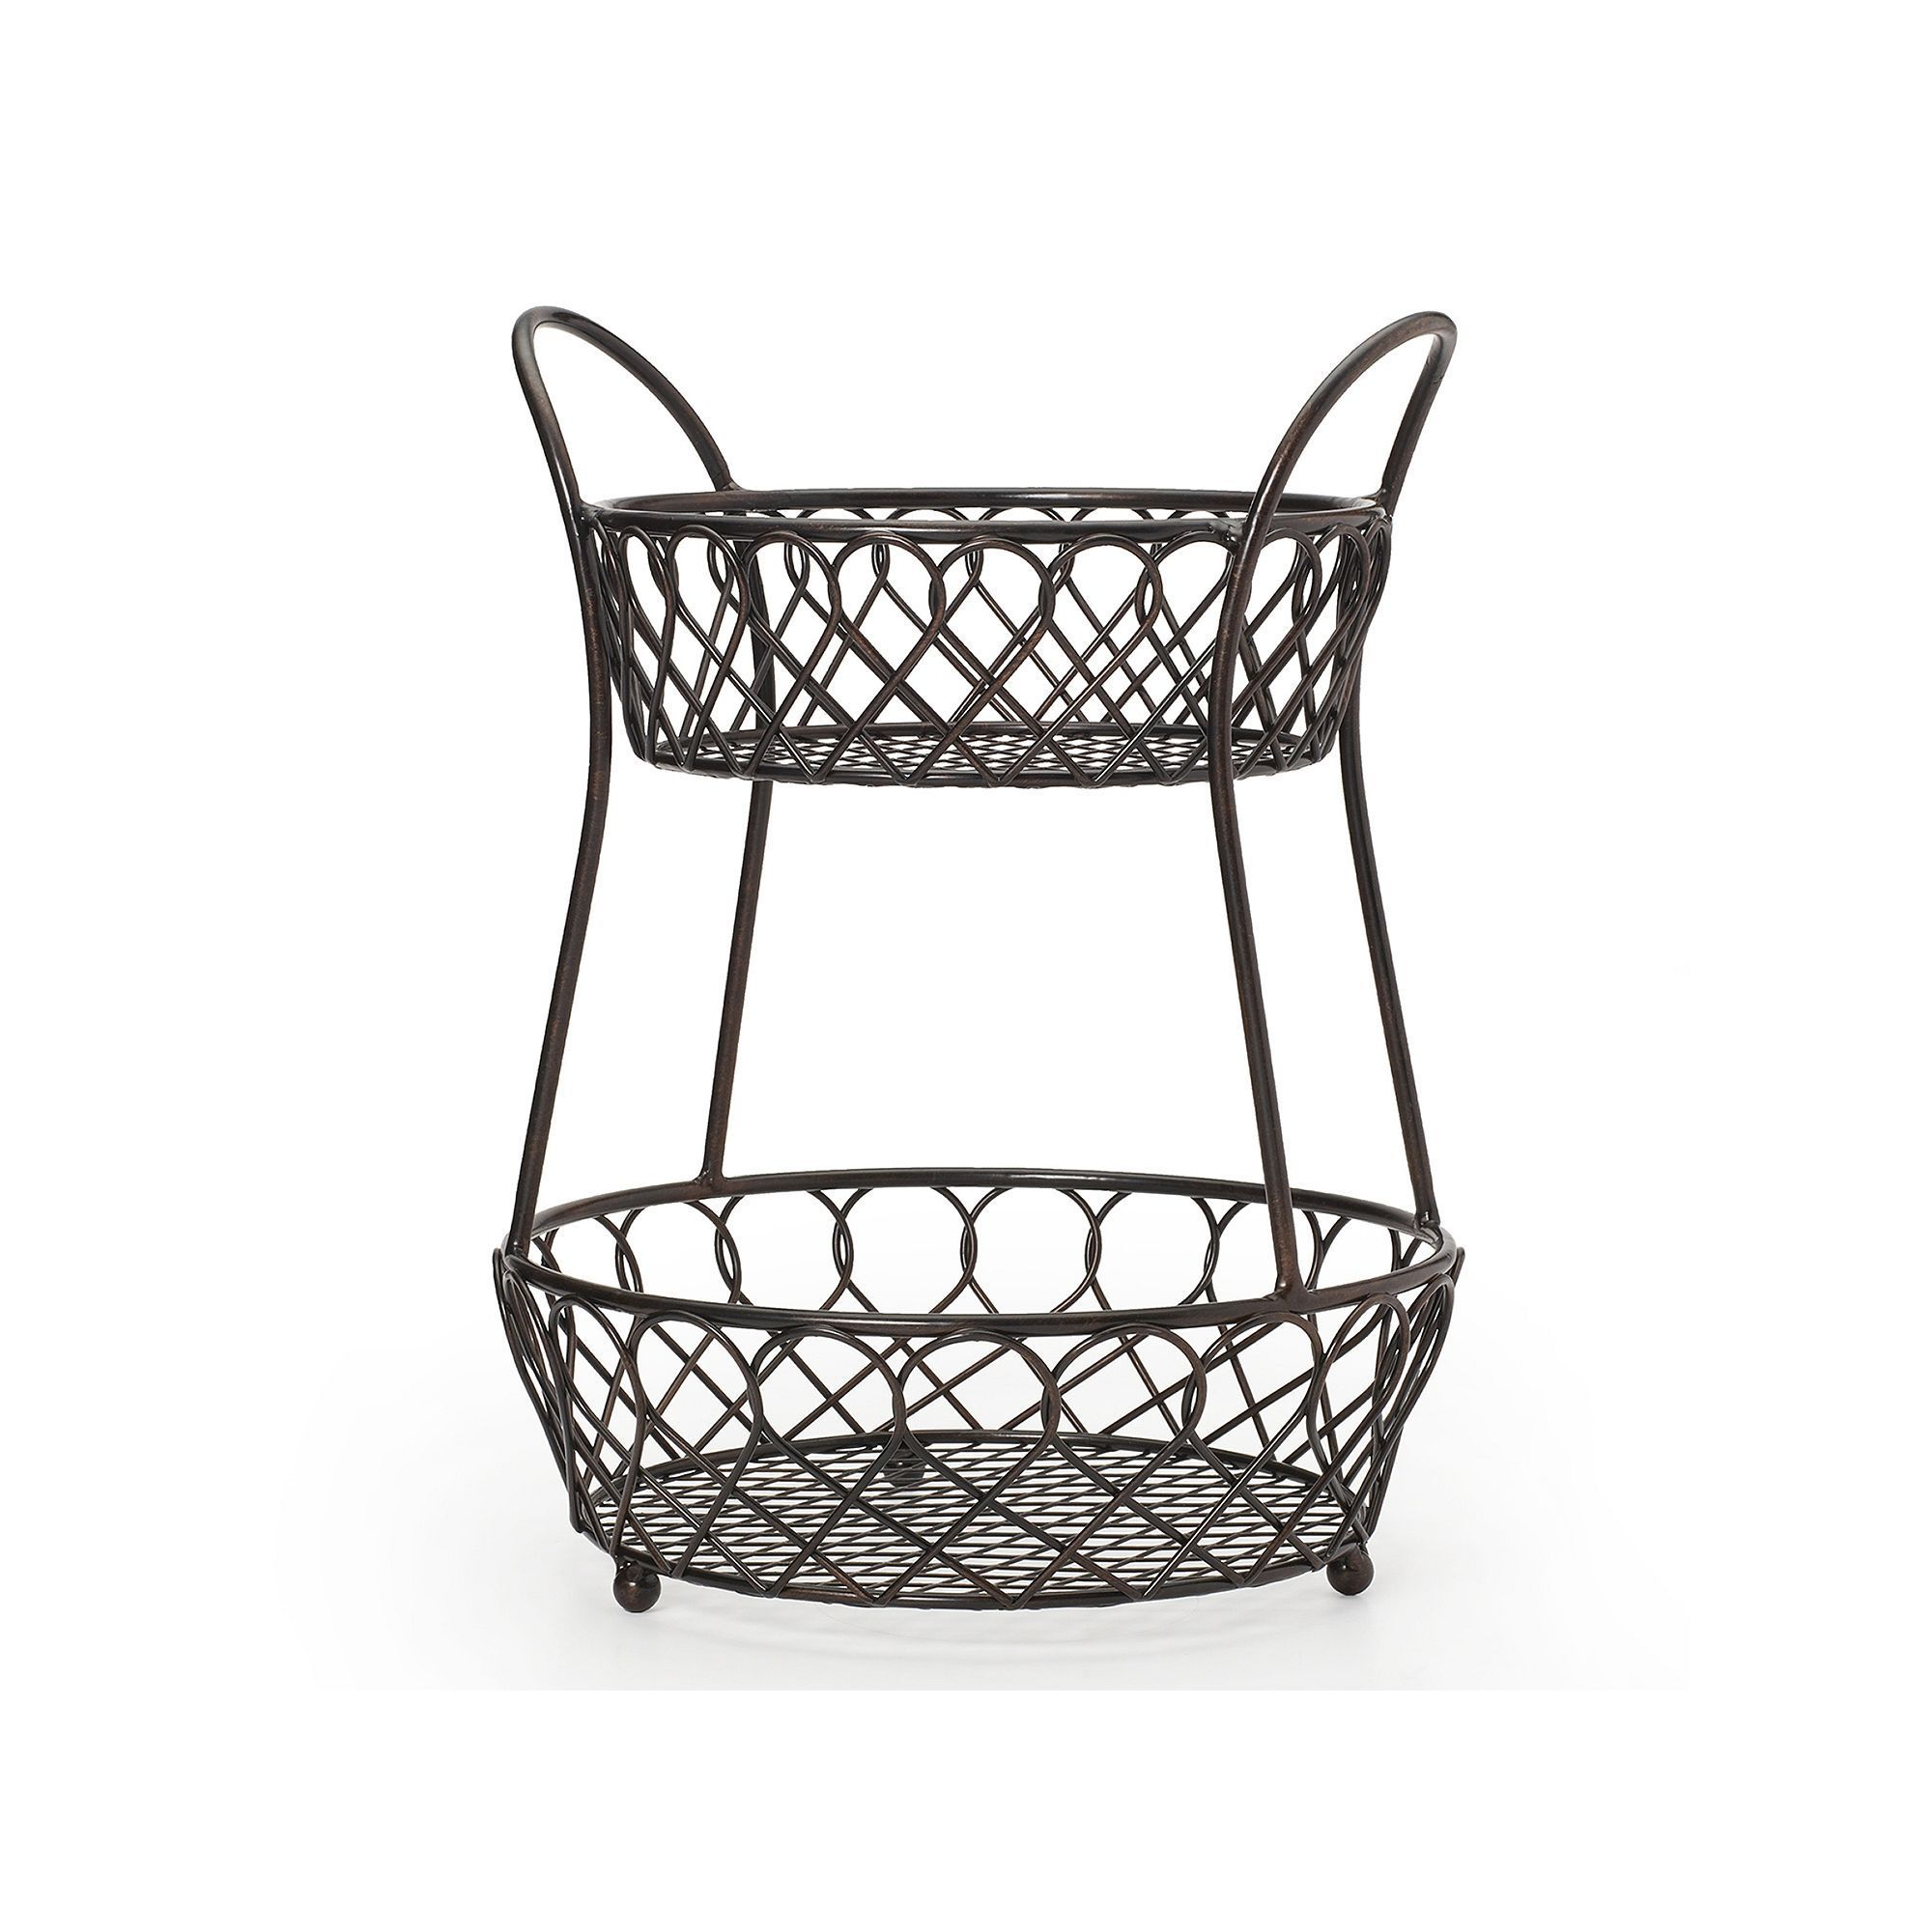 Mikasa Gourmet Basics Loop Lattice 2 Tier Basket